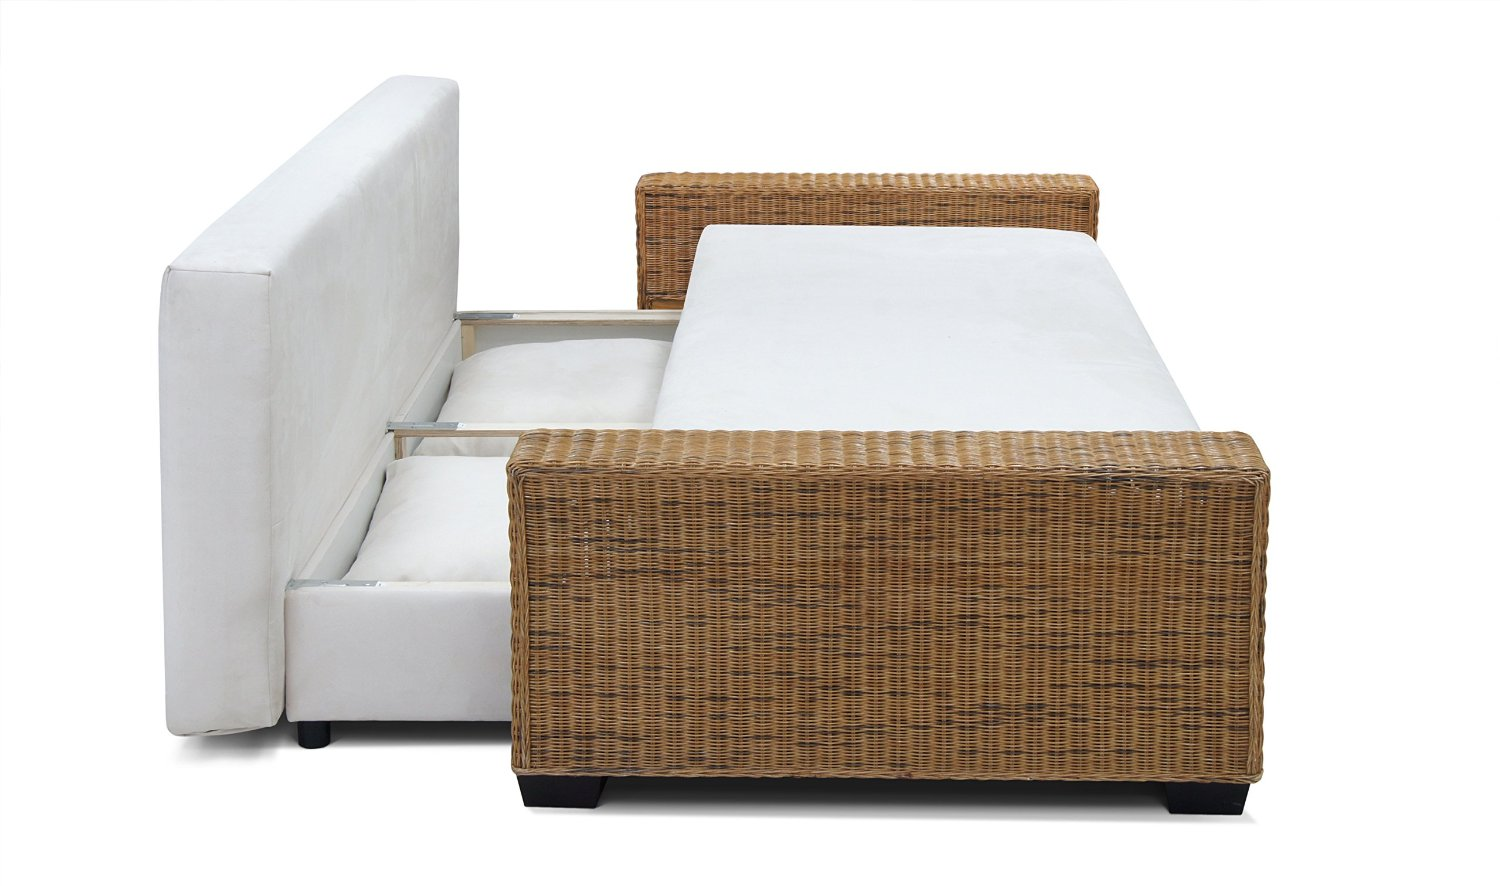 rattan schlafsofa bettkasten schlafsofa ratgeber. Black Bedroom Furniture Sets. Home Design Ideas